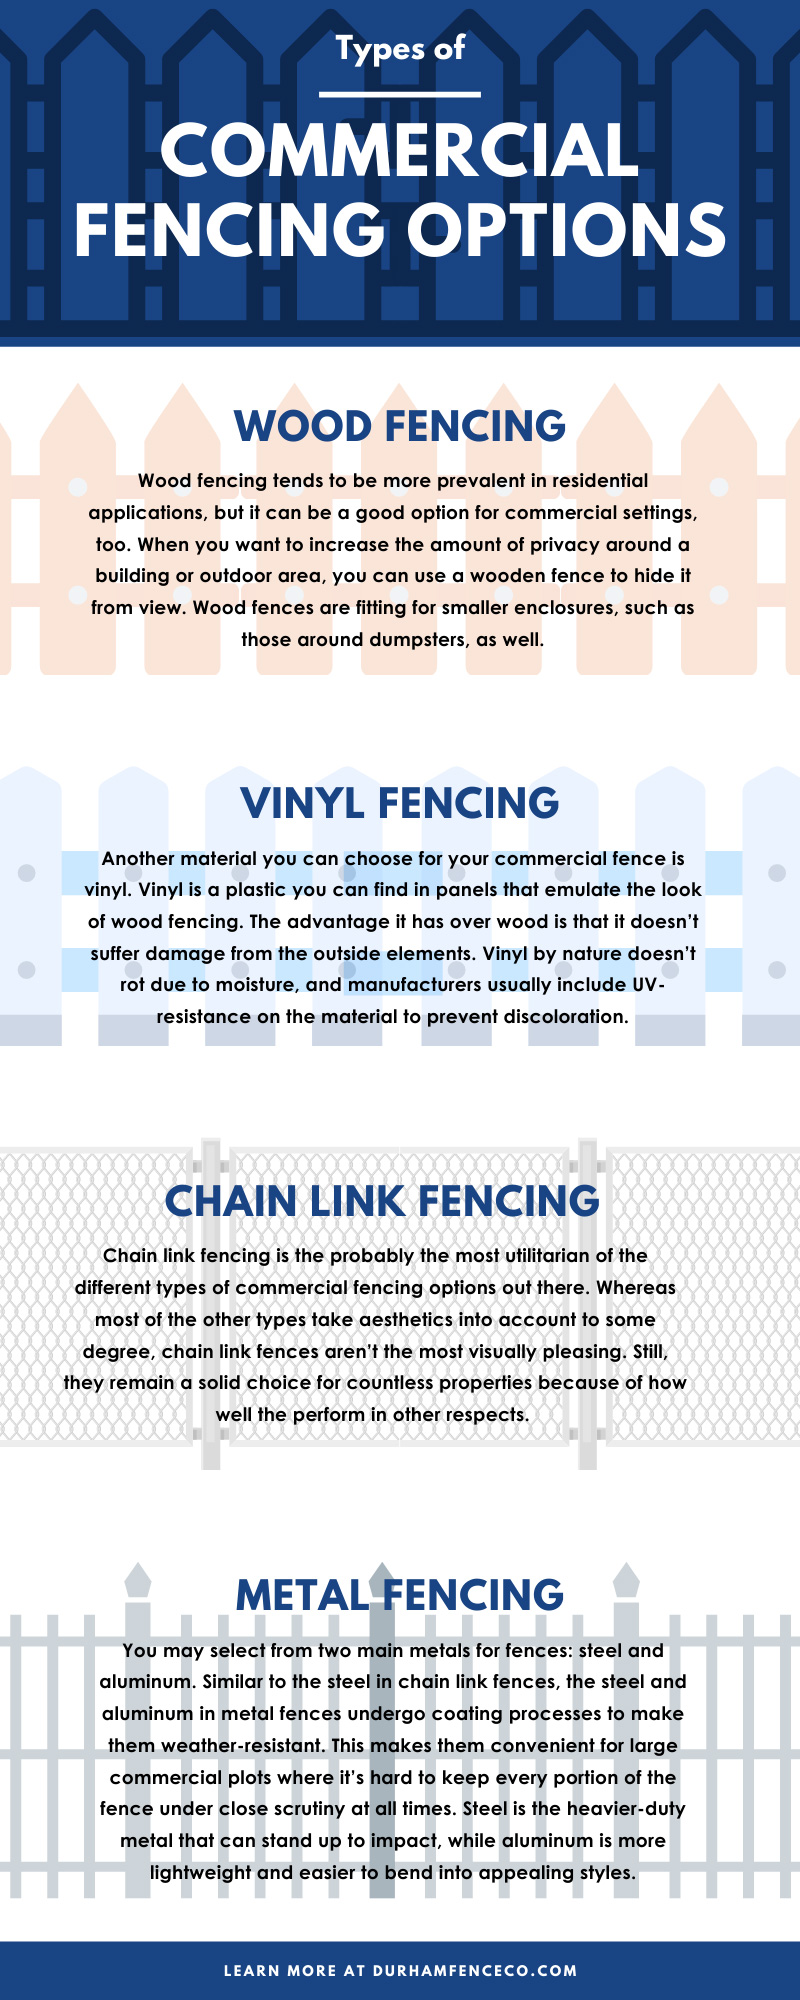 Commercial Fencing Options